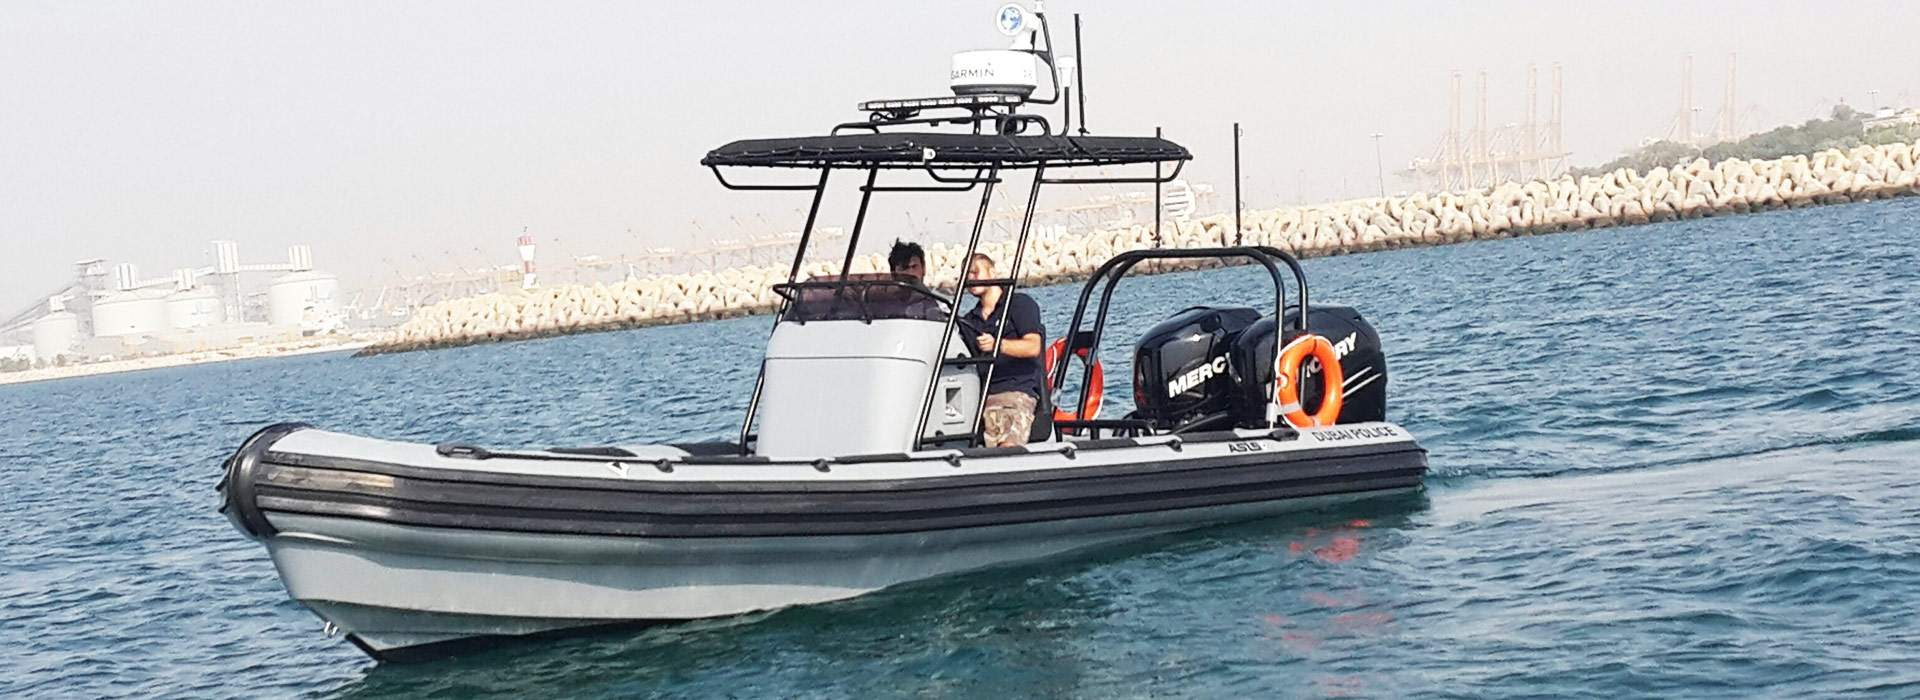 New Police SWAT Boats Ready for Duty